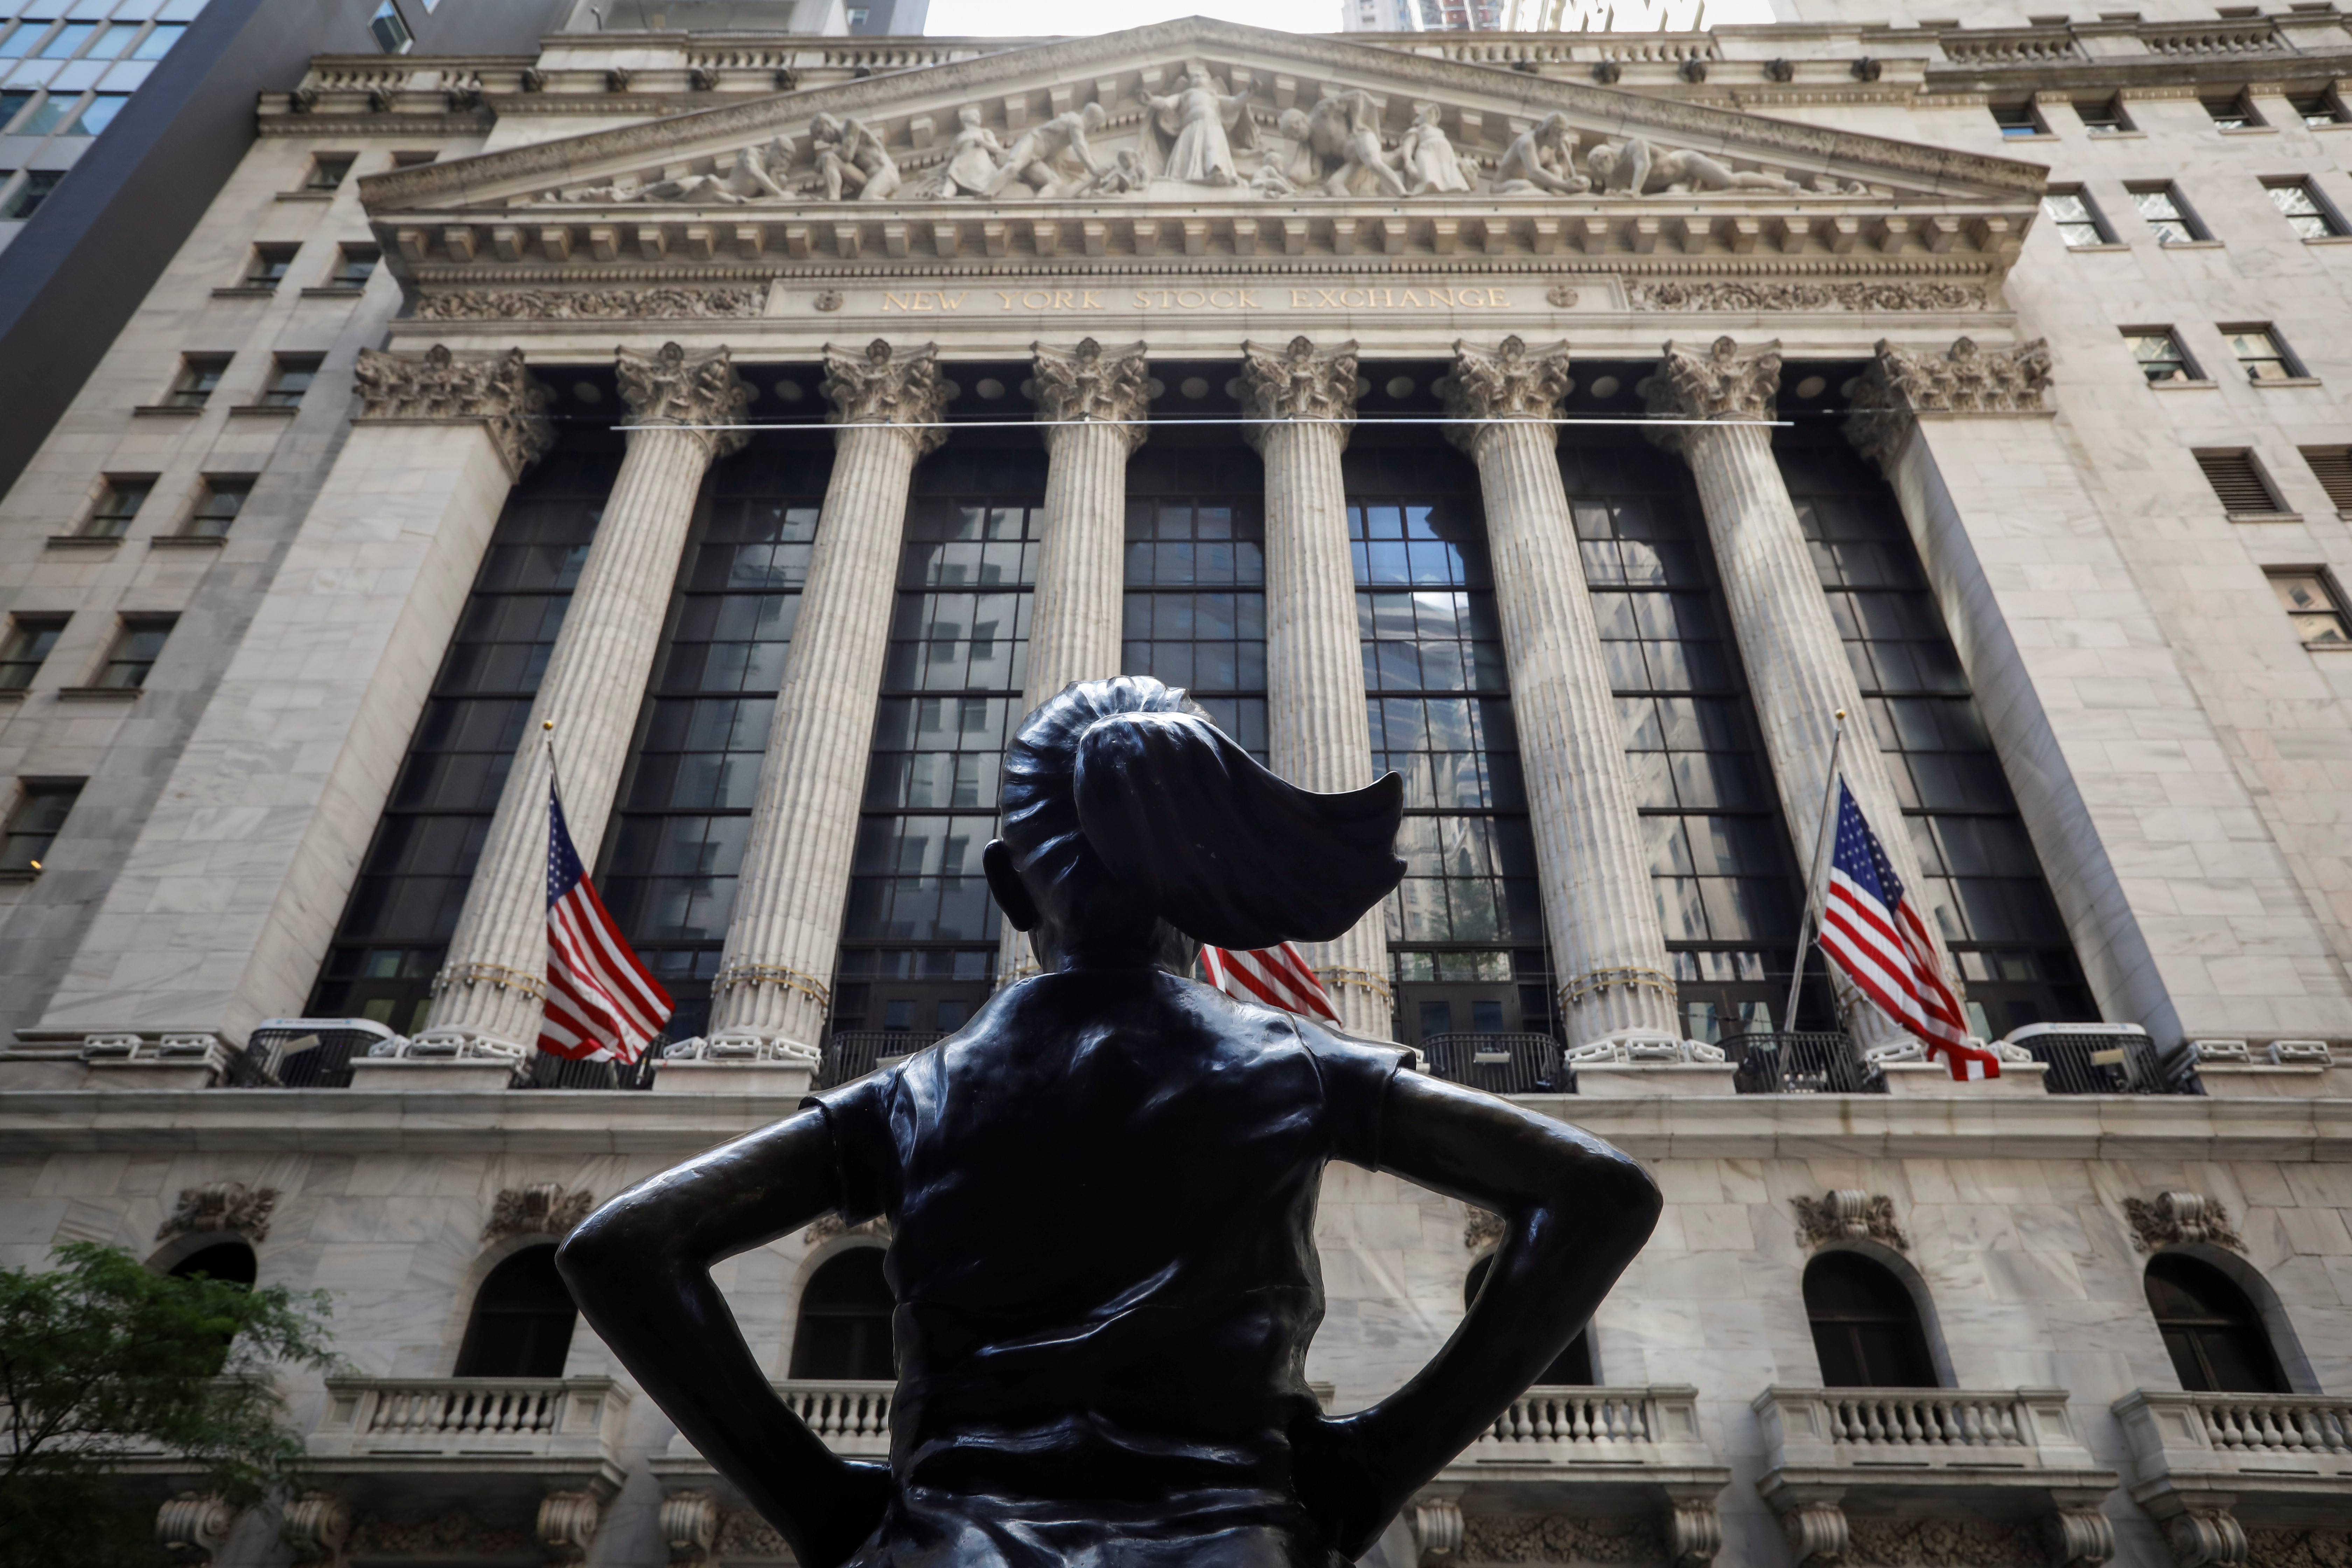 The front facade  of the New York Stock Exchange (NYSE) is seen in New York City, New York, U.S., June 26, 2020. REUTERS/Brendan McDermid - RC2AHH9NHI0T